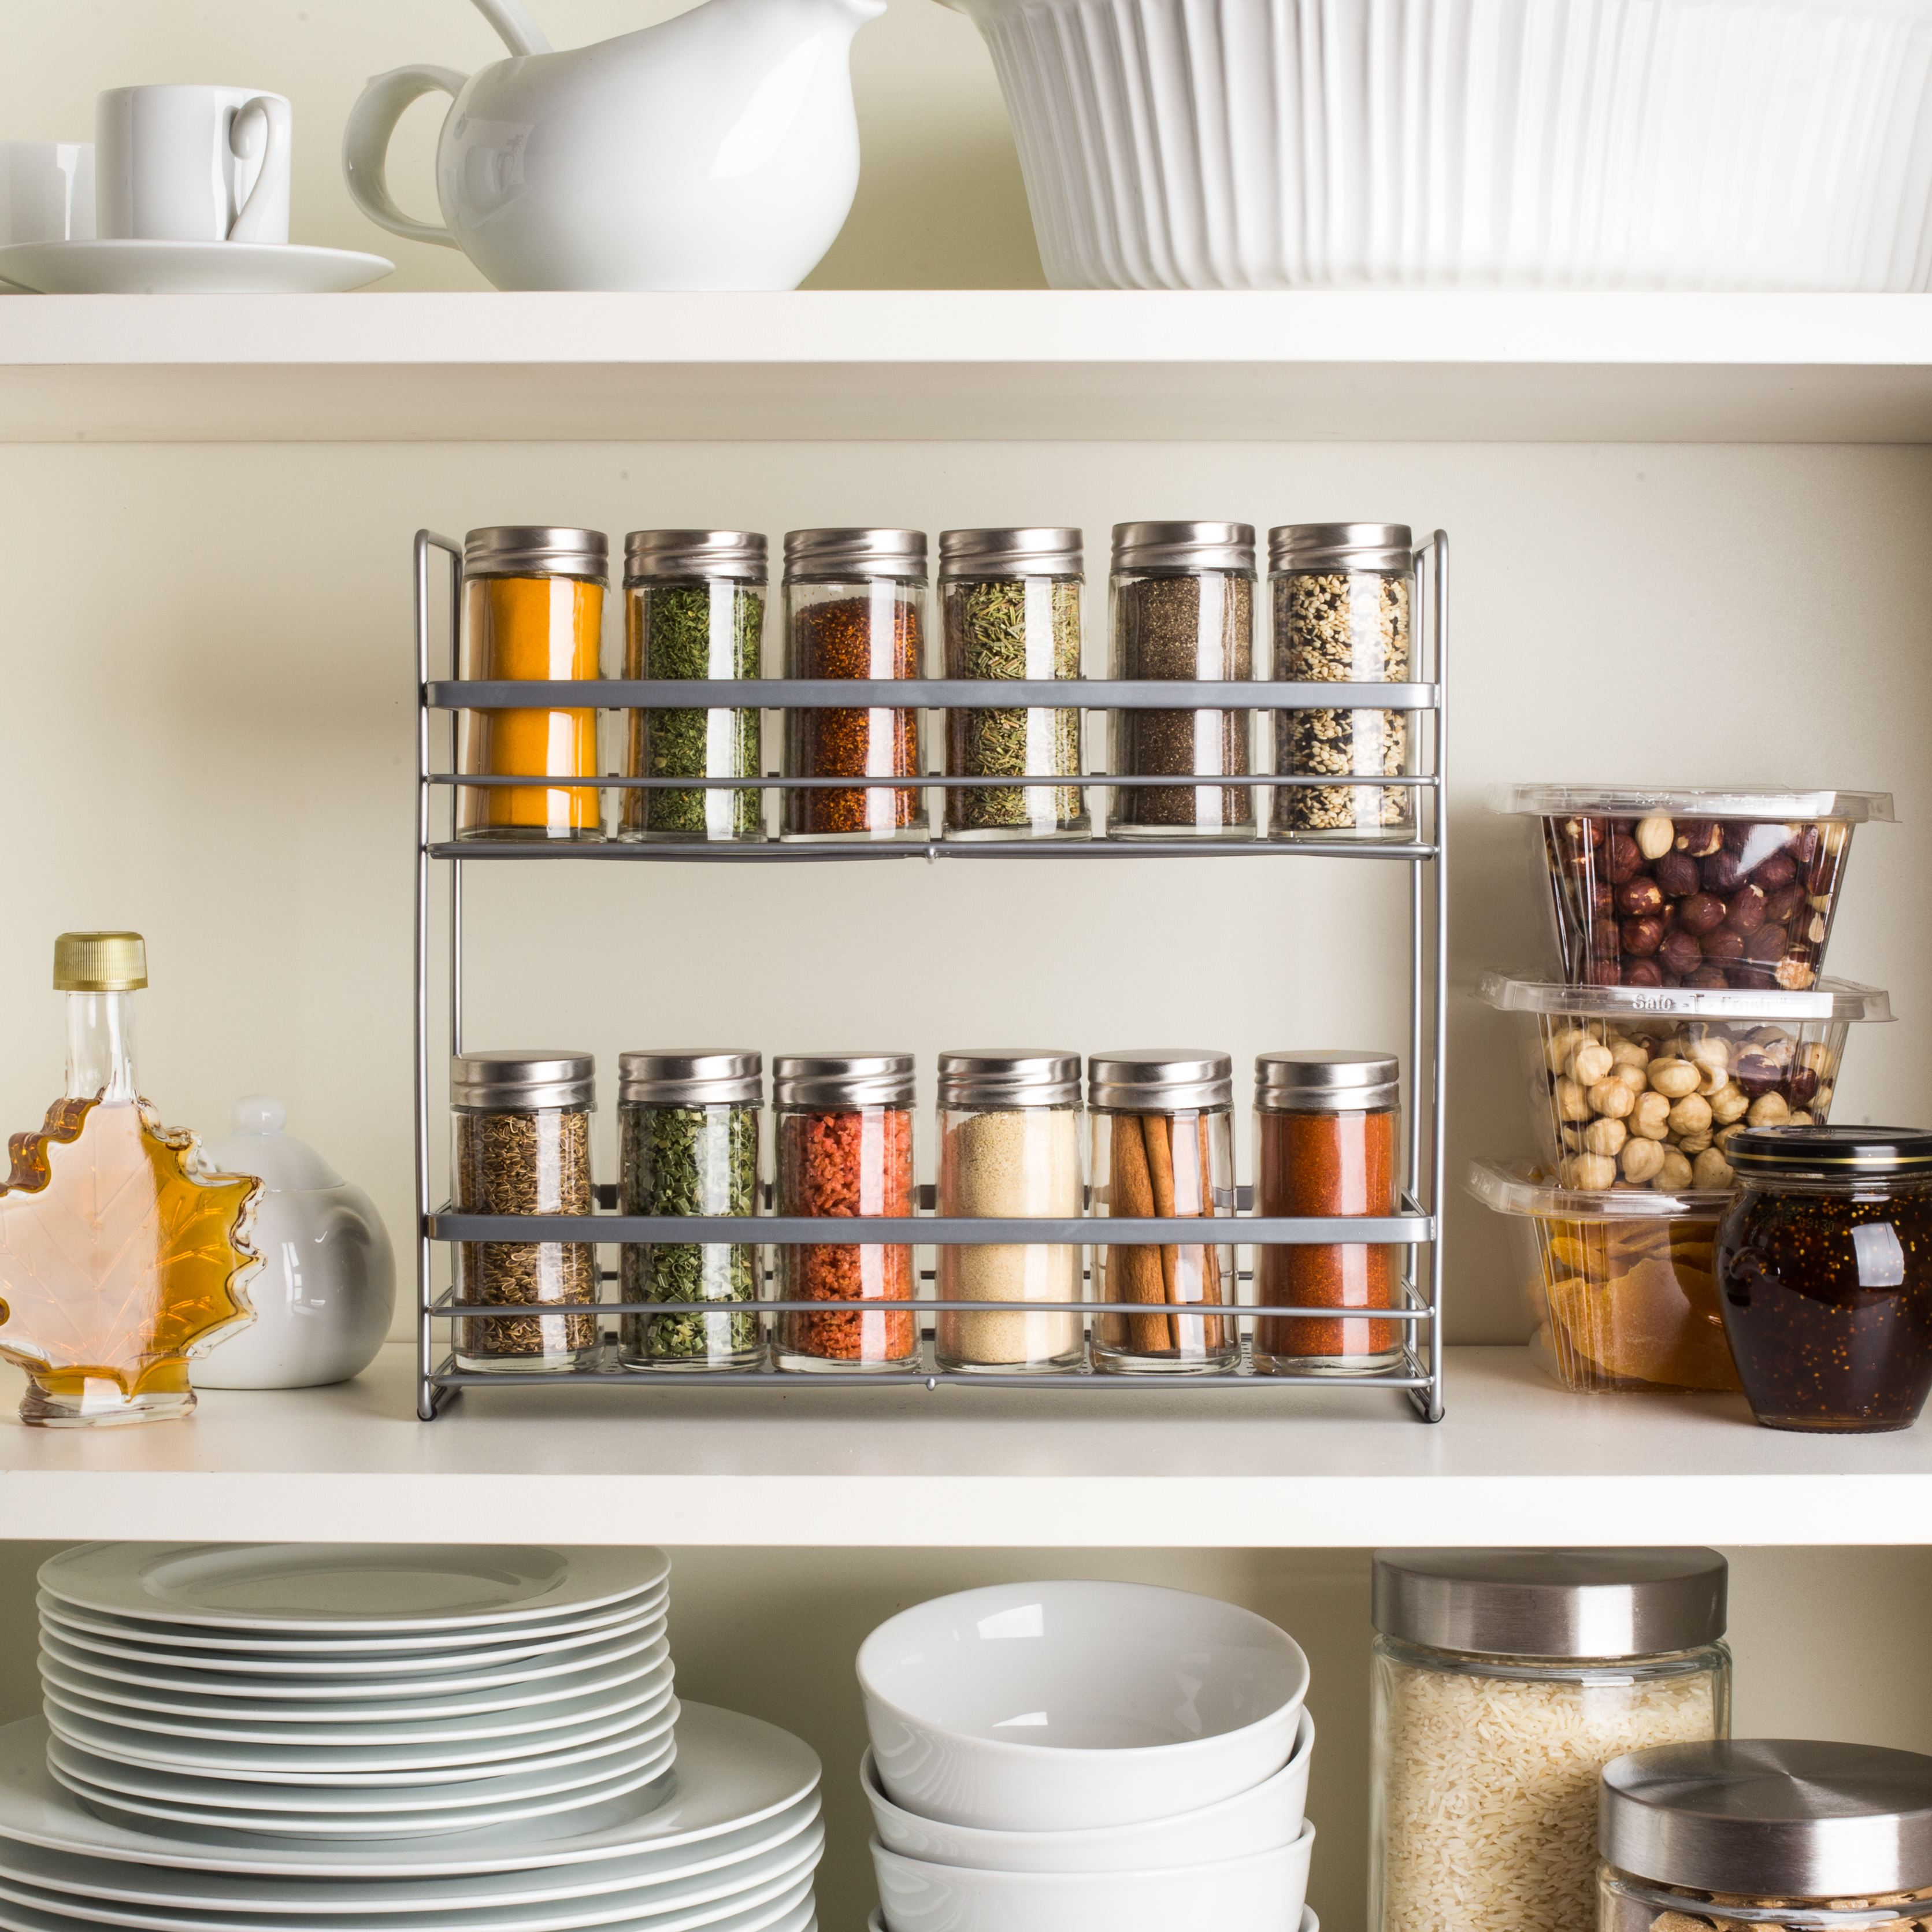 2-tier thin wire spice shelf for inside your cabinet